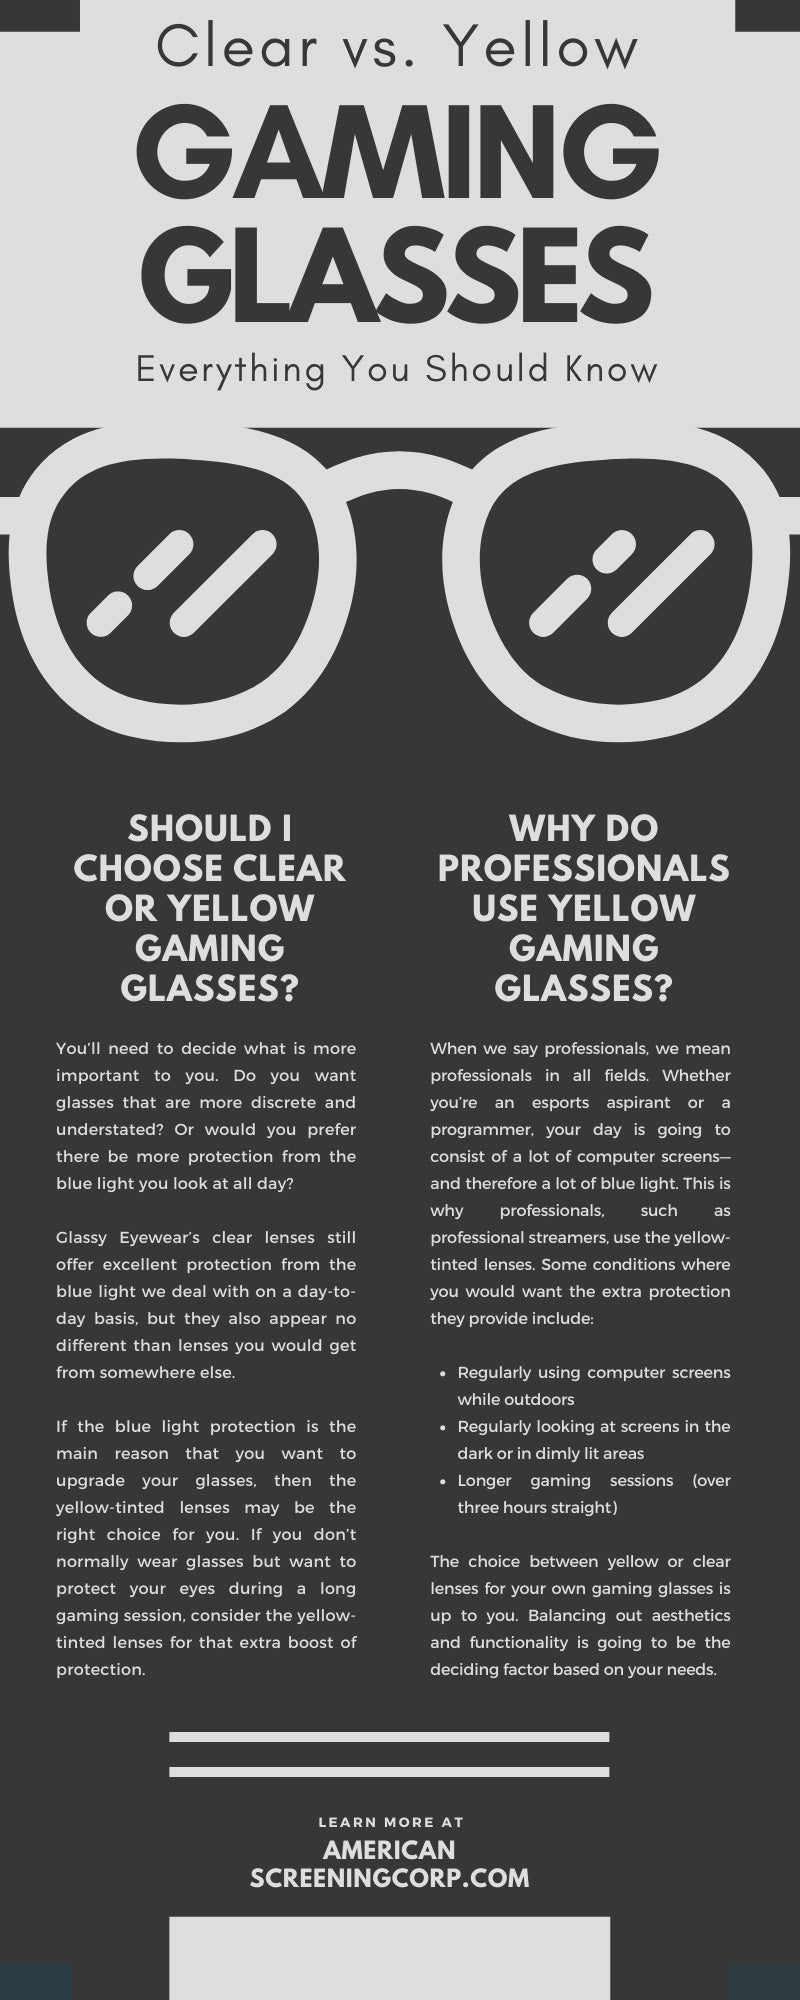 Clear vs. Yellow Gaming Glasses: Everything You Should Know